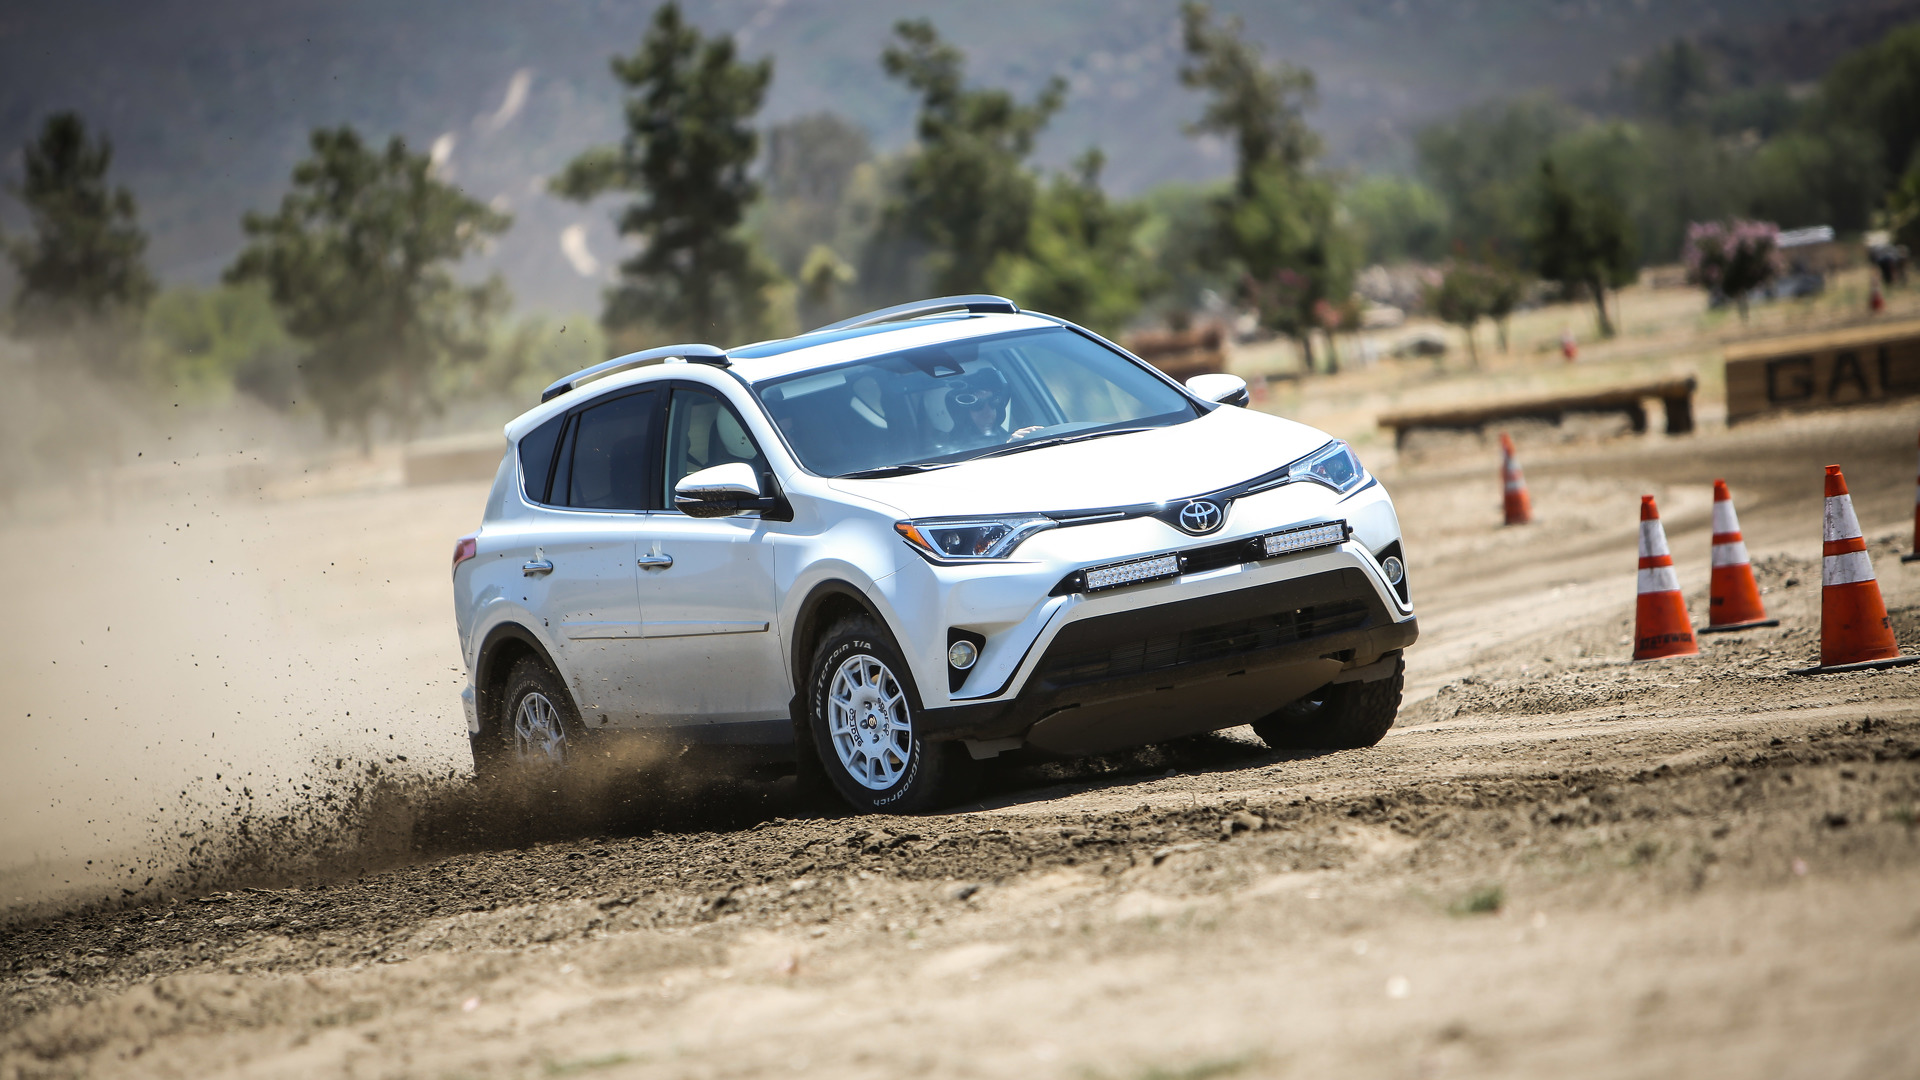 Getting dirty and sideways in a pair of rally ready toyota rav4s publicscrutiny Images